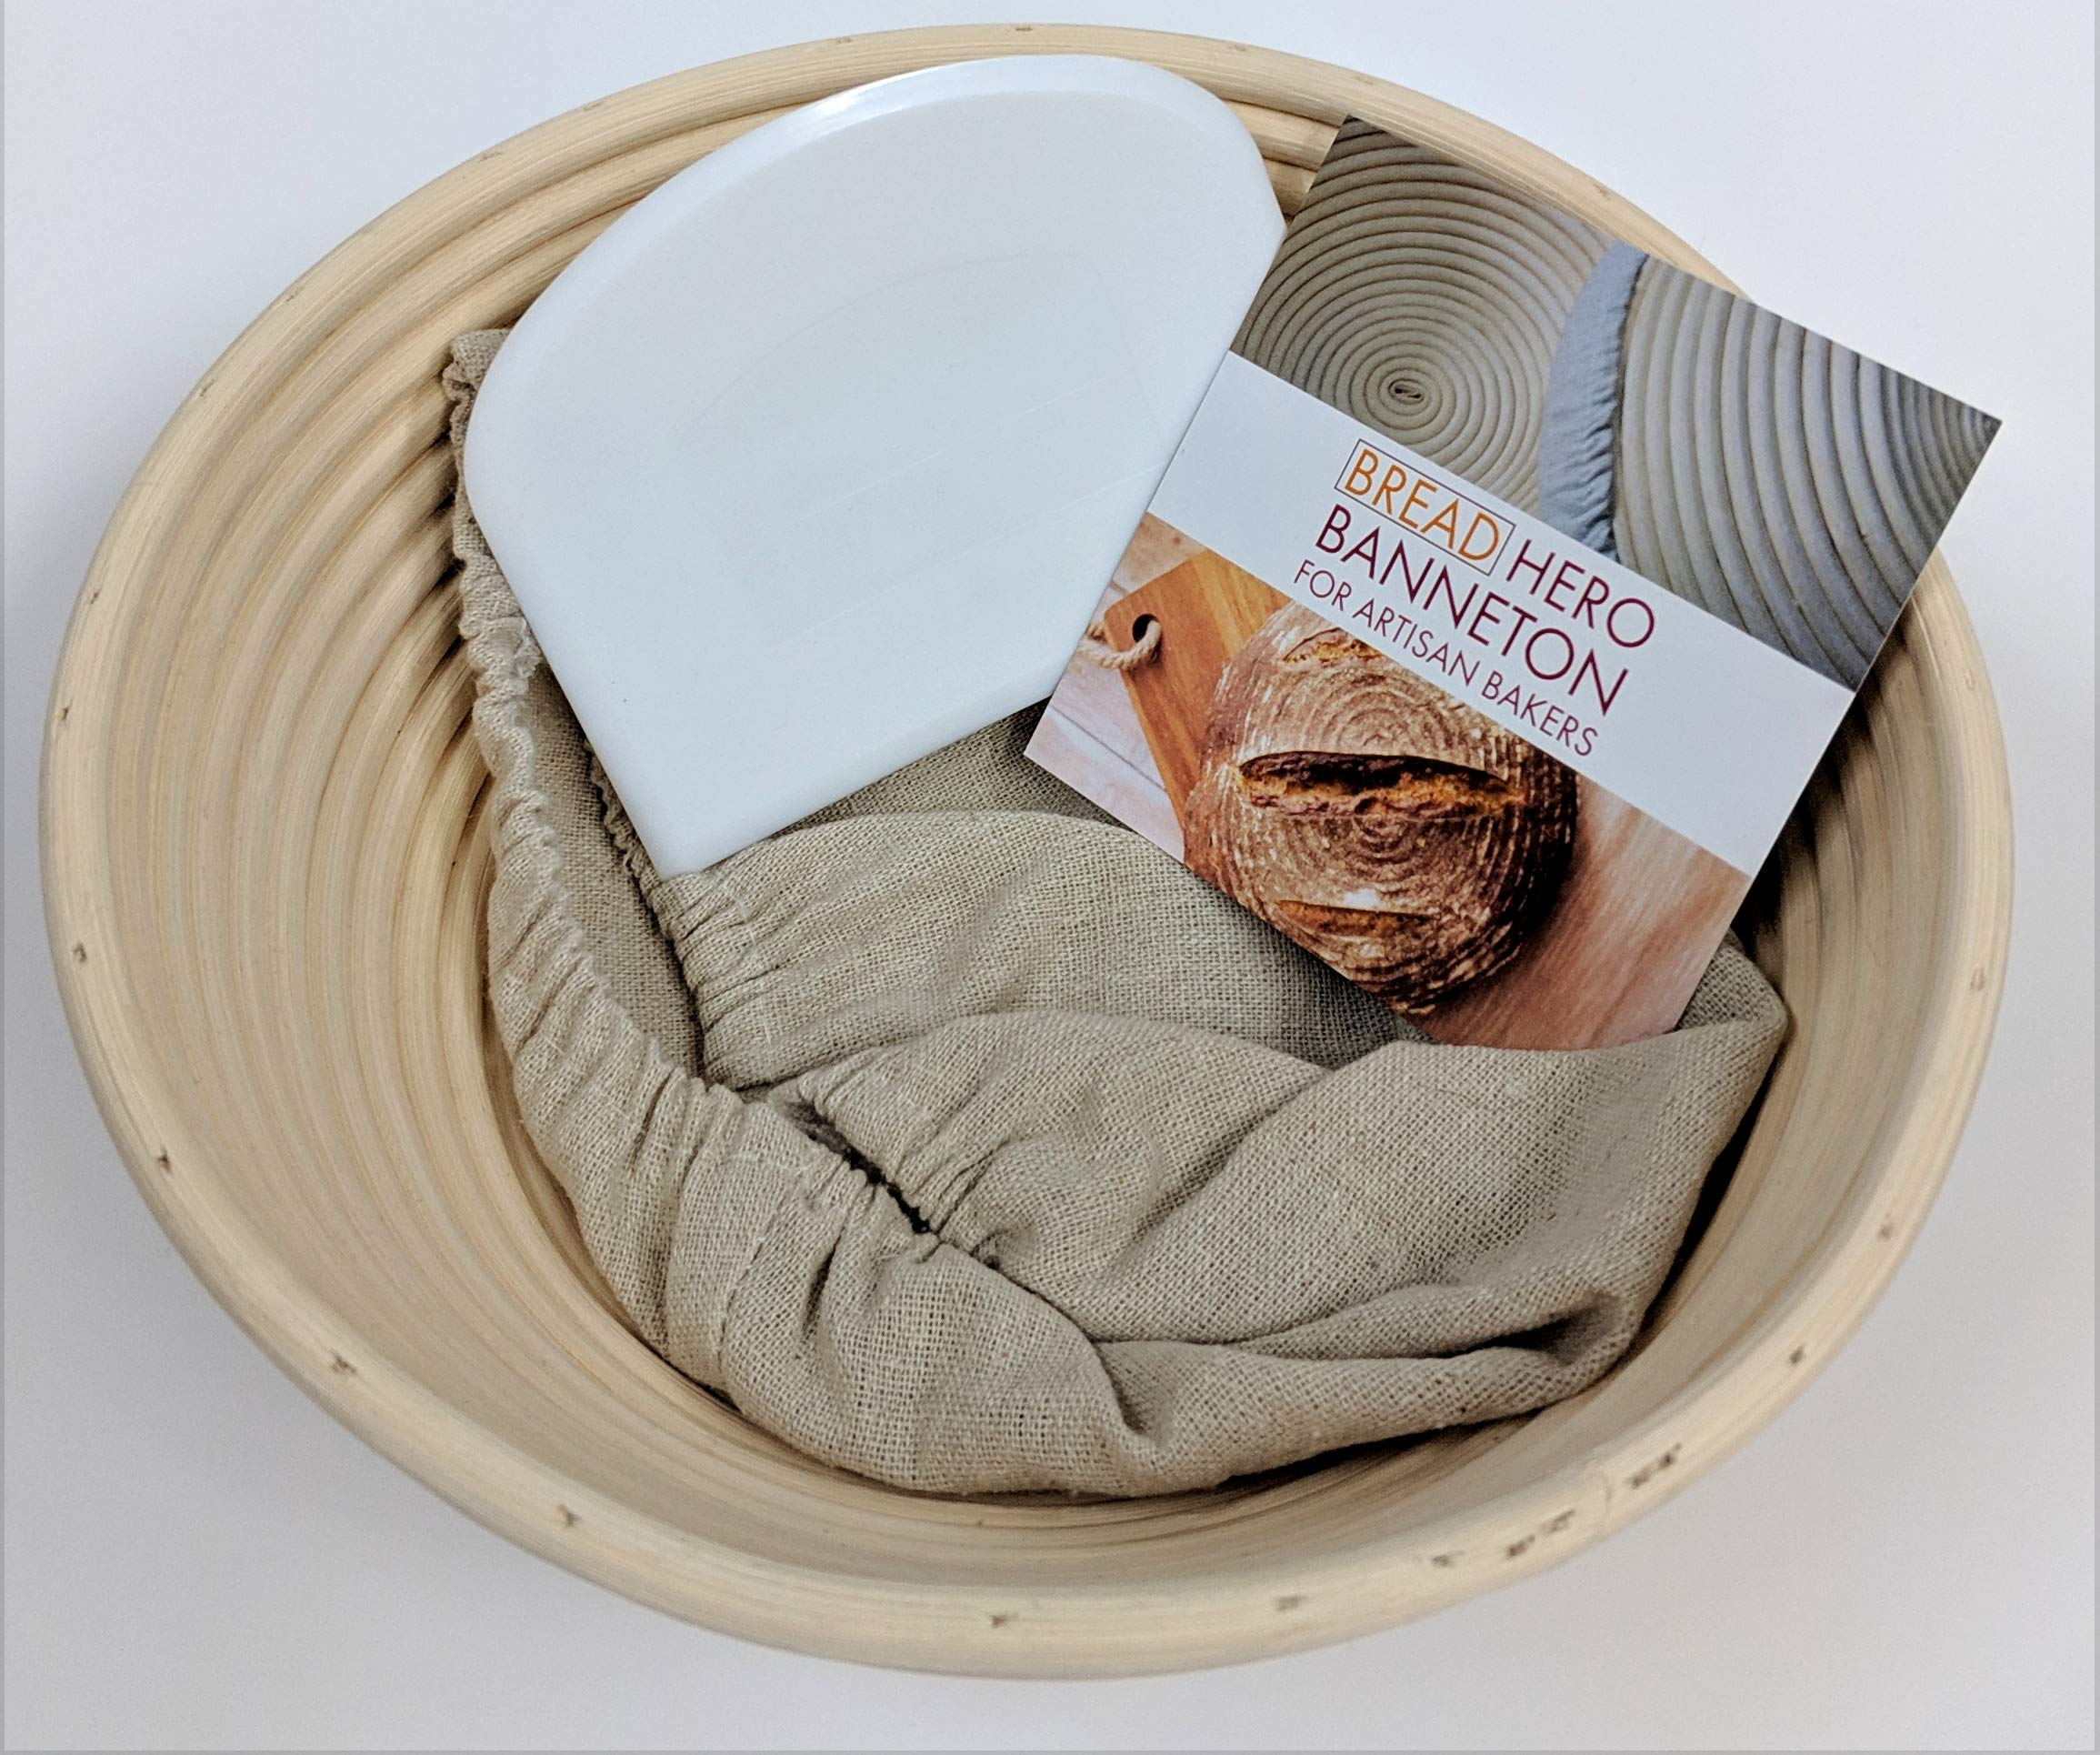 9 Inch Banneton Bread Proofing Basket for Artisan Bakers – Professional Bakers or Home Bakers Using Sourdough Recipes and Sourdough Starters For Novice or Experienced Baker Brotform Rattan Material